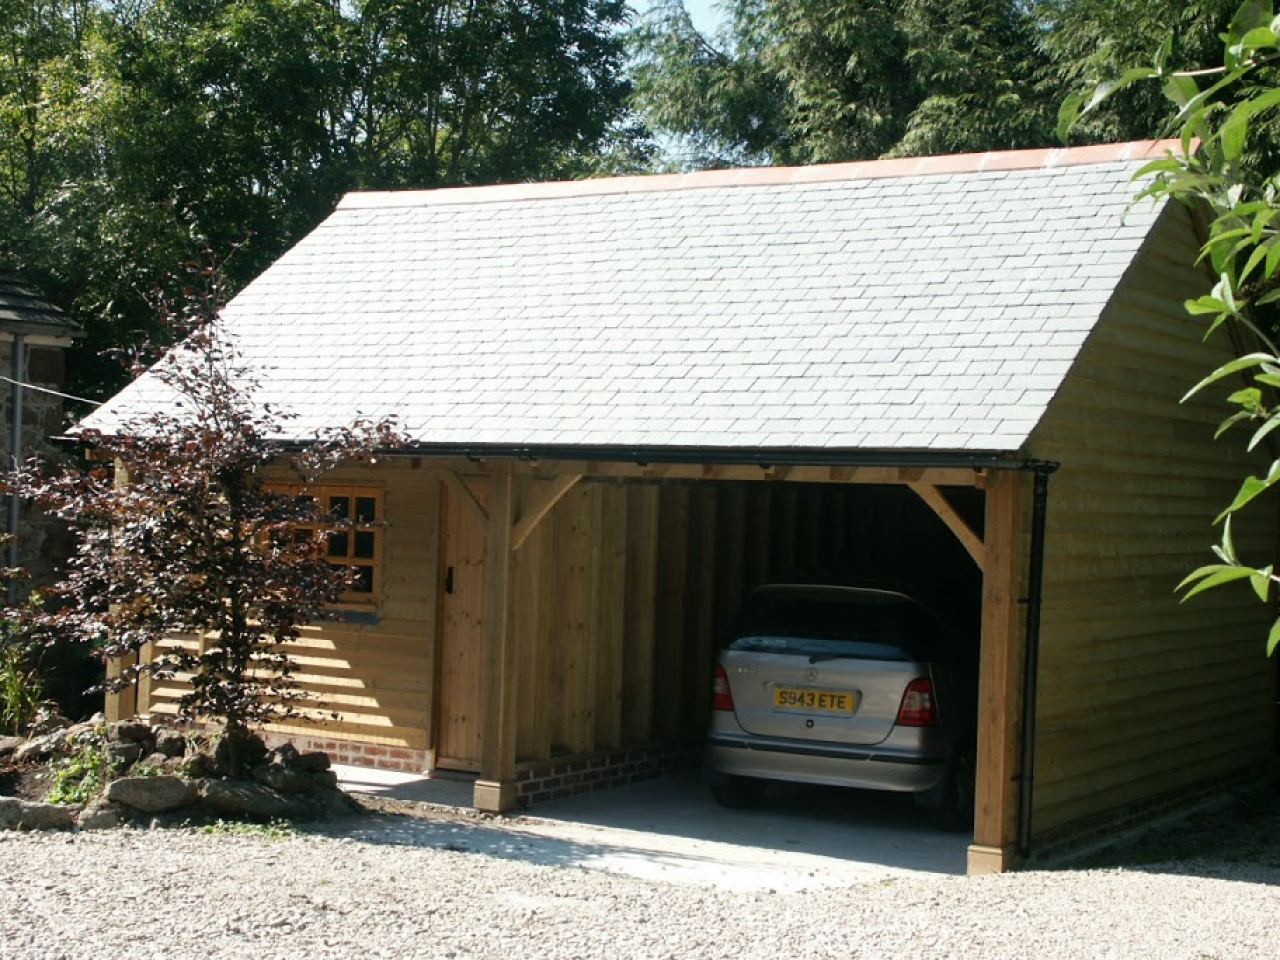 Do It Yourself Cabin Plans Free Small Cabin Plans Small: 24X24 Garage Kits Log Cabin Garage Kits, Do It Yourself